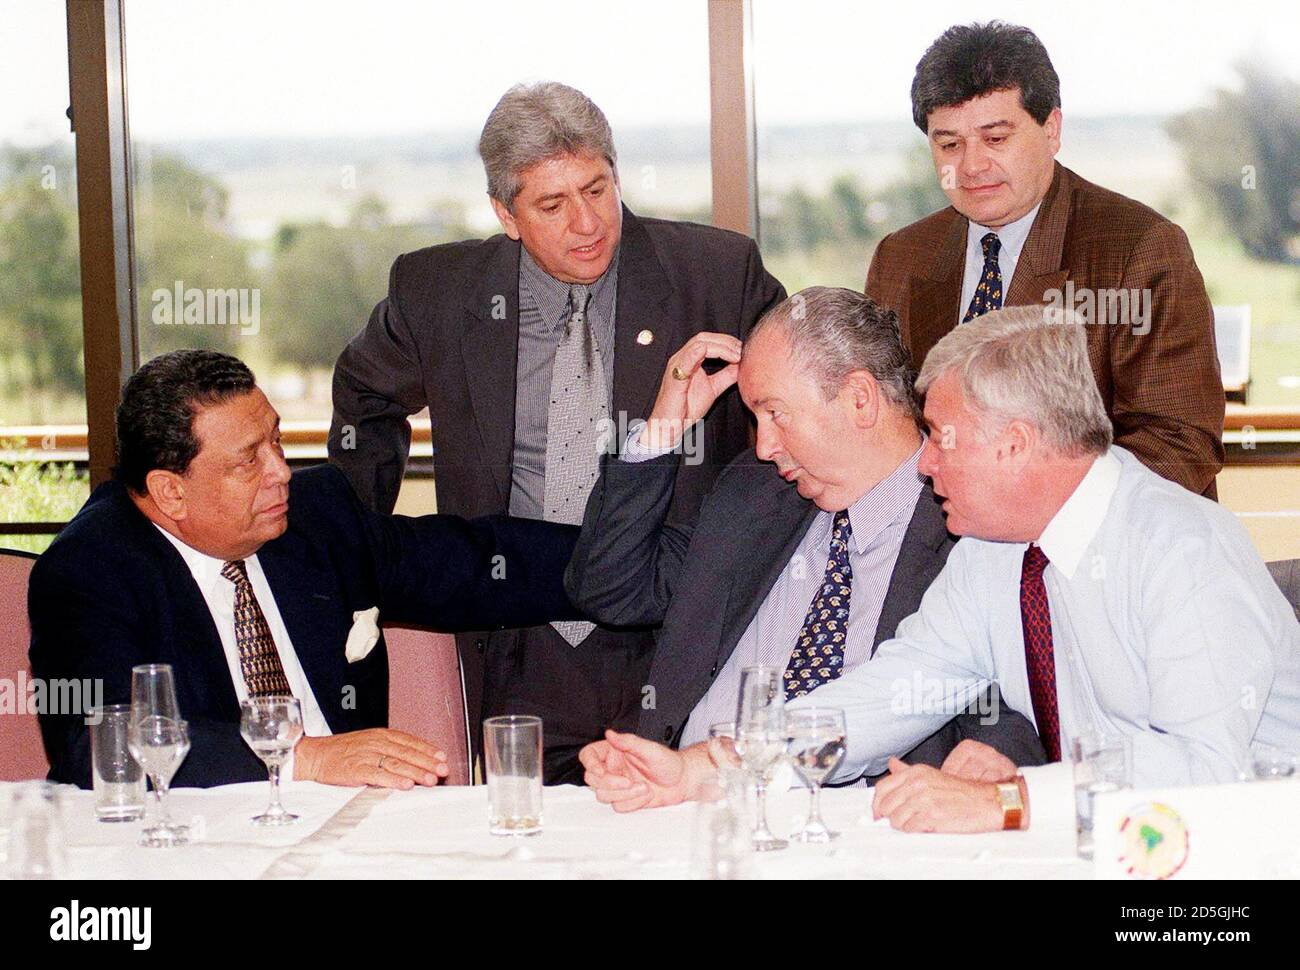 Presidents of the soccer federations (seated, L-R) from Peru, Eduardo Delfino, Argentina, Julio Grondona, and Brazil, Ricardo Teixeira, talk with (standing, L-R) Nelson Gutierrez of Uruguay and Nestor Benitez of the South American Soccer Confederation, during a break in a meeting, September 15. The coaches participated in a continent-wide meeting to decide on the calendar for the qualifying matches leading up to the World Cup to be played in Korea and Japan in 2002.  RR/BM Stock Photo